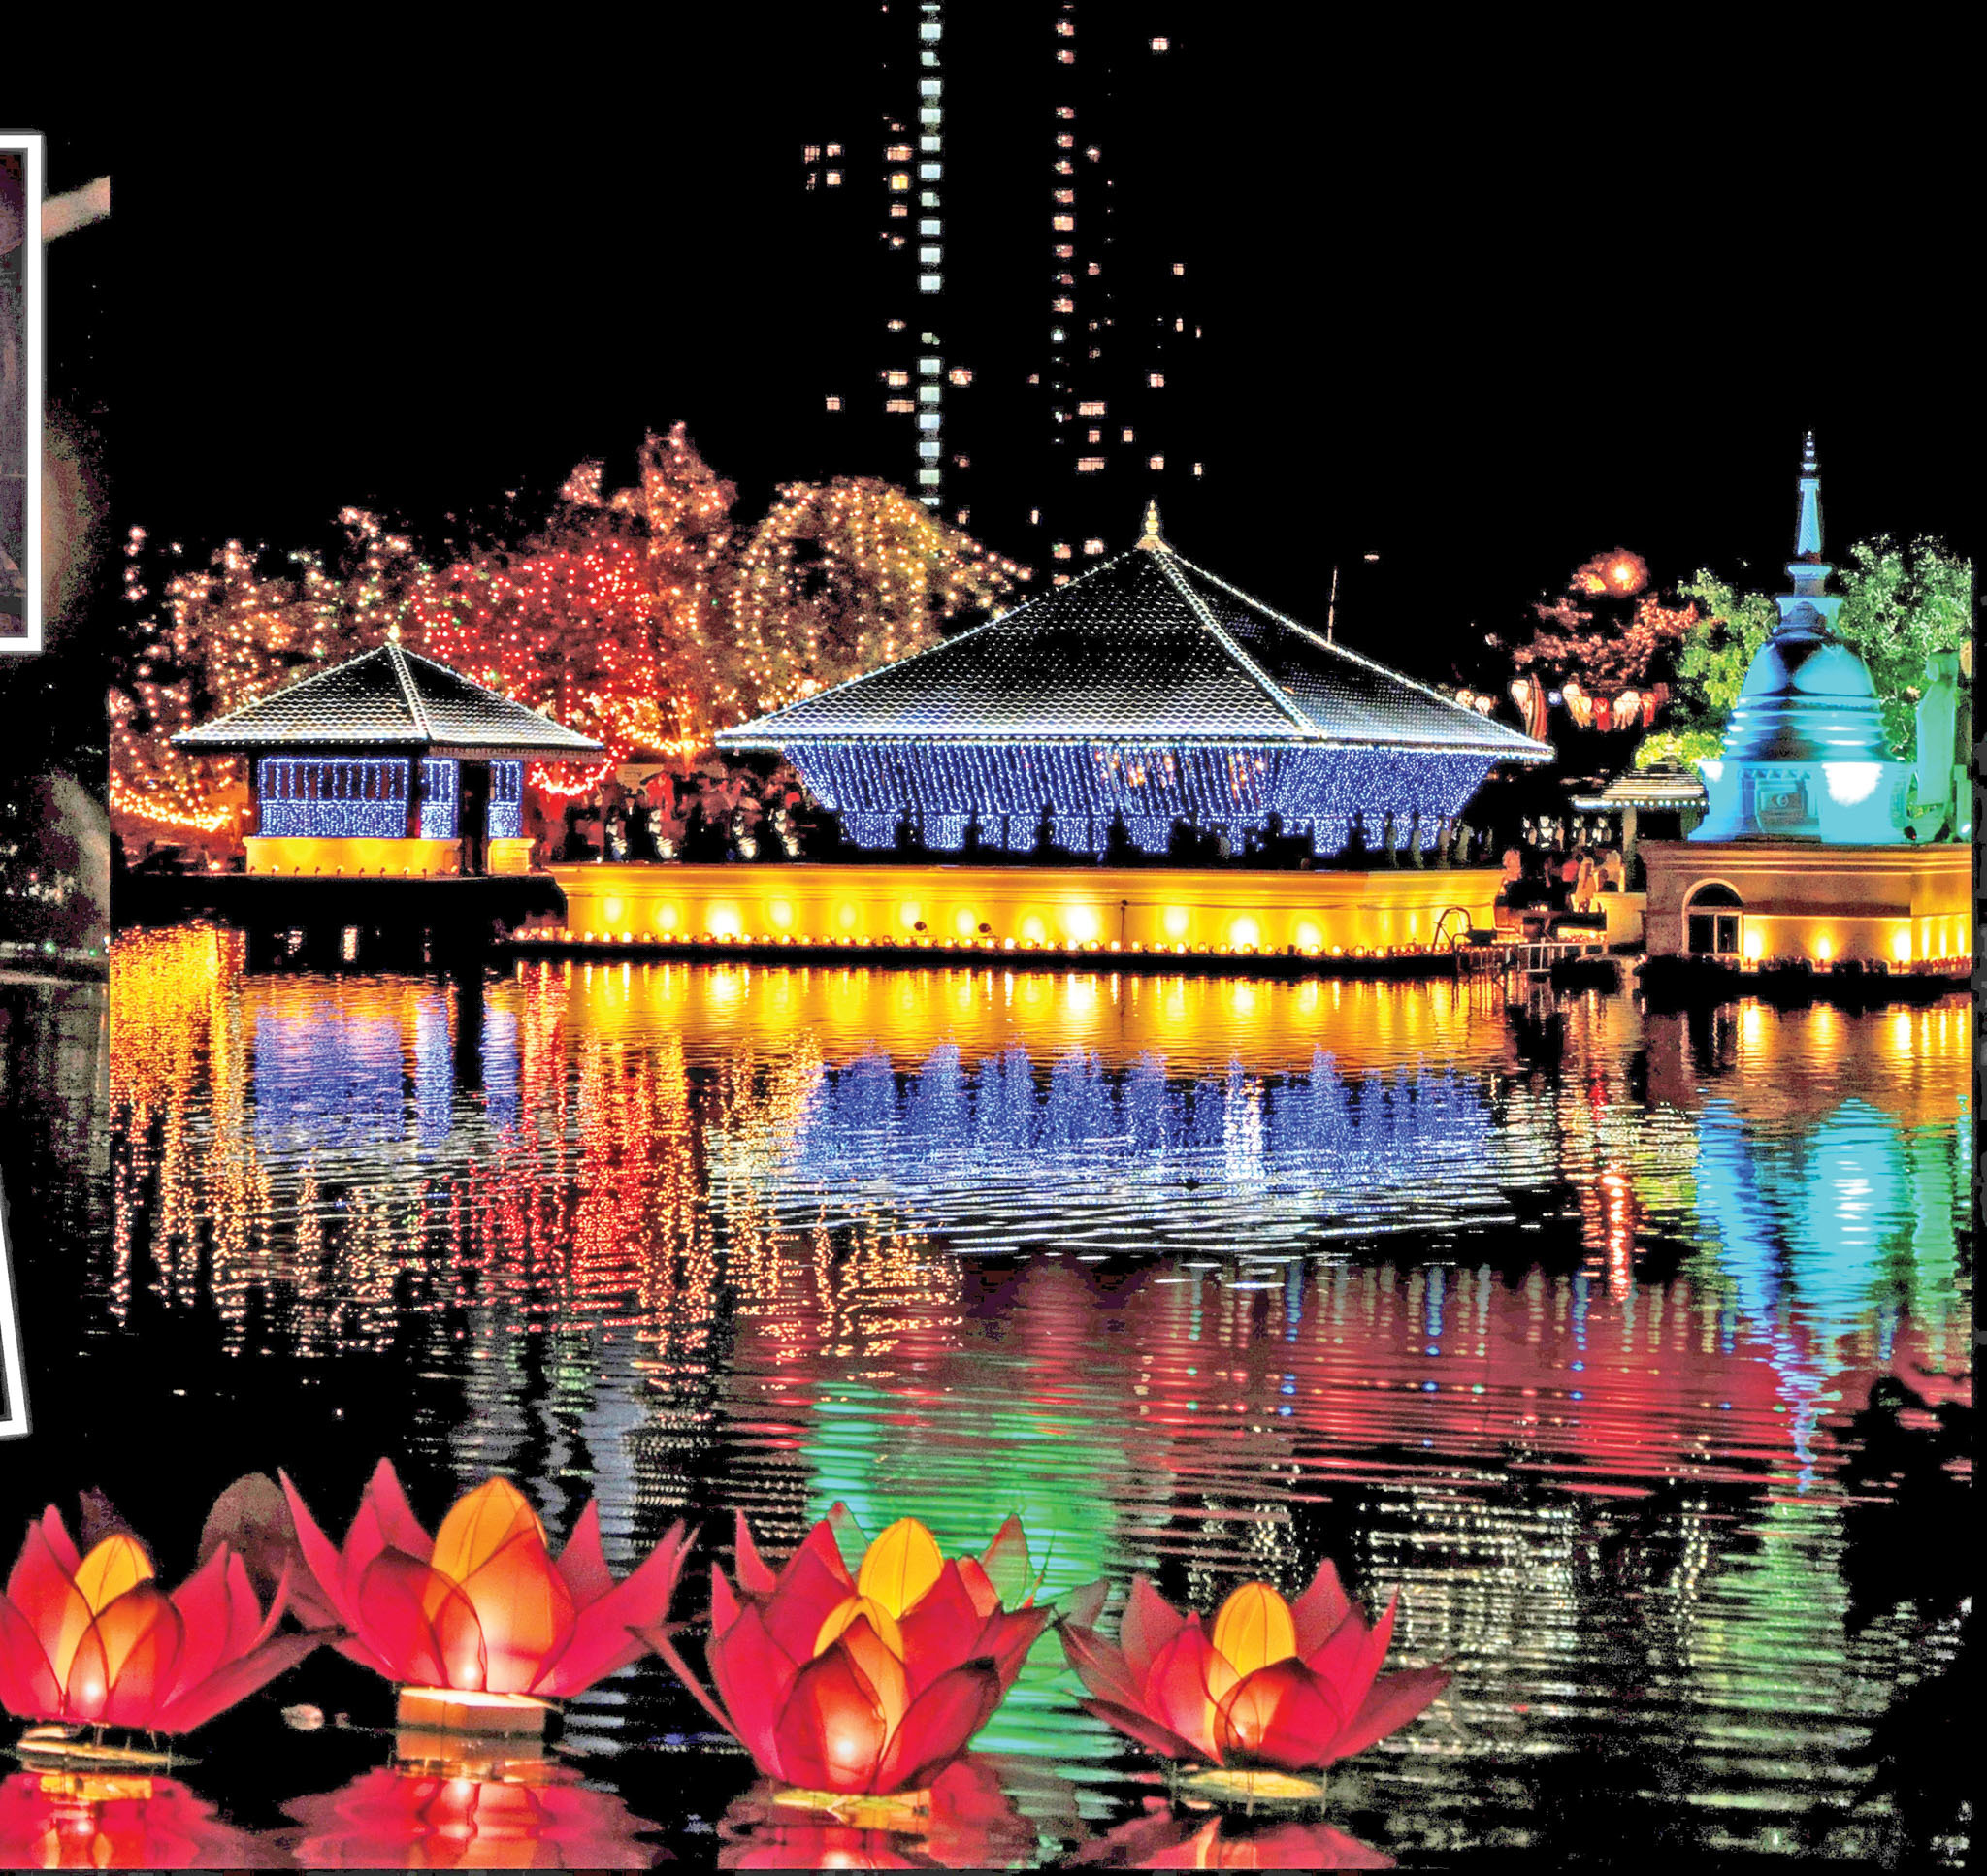 Vesak is the most important day for Buddhists in Sri Lanka.